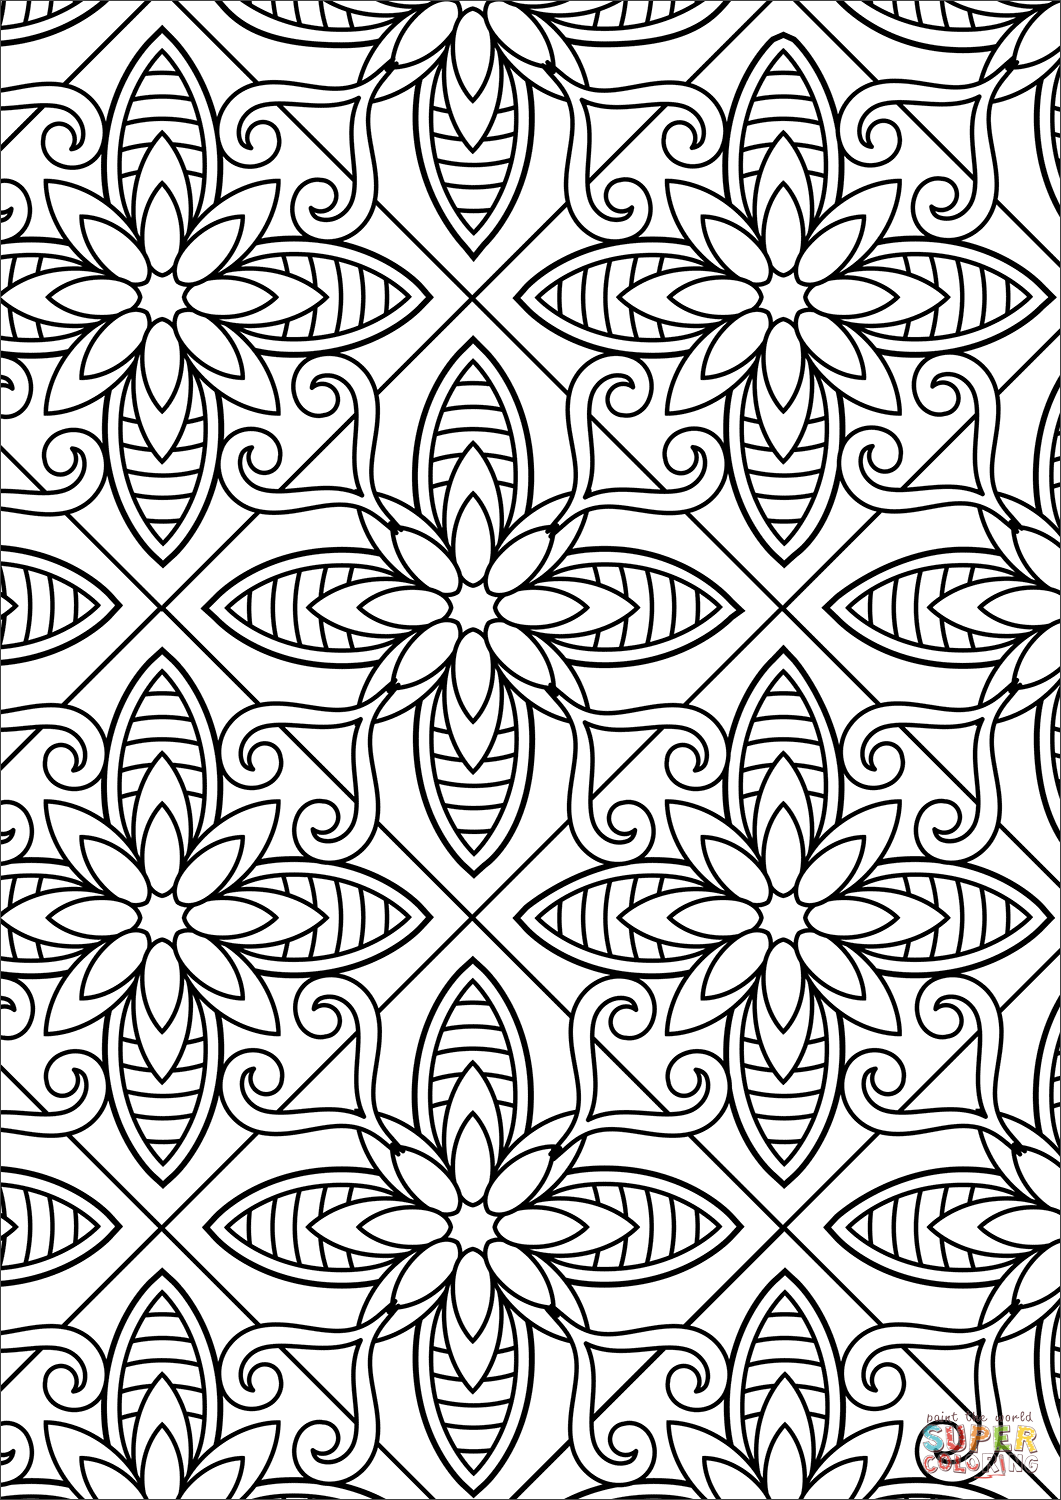 designs for coloring coloring to calm volume two patterns for coloring designs